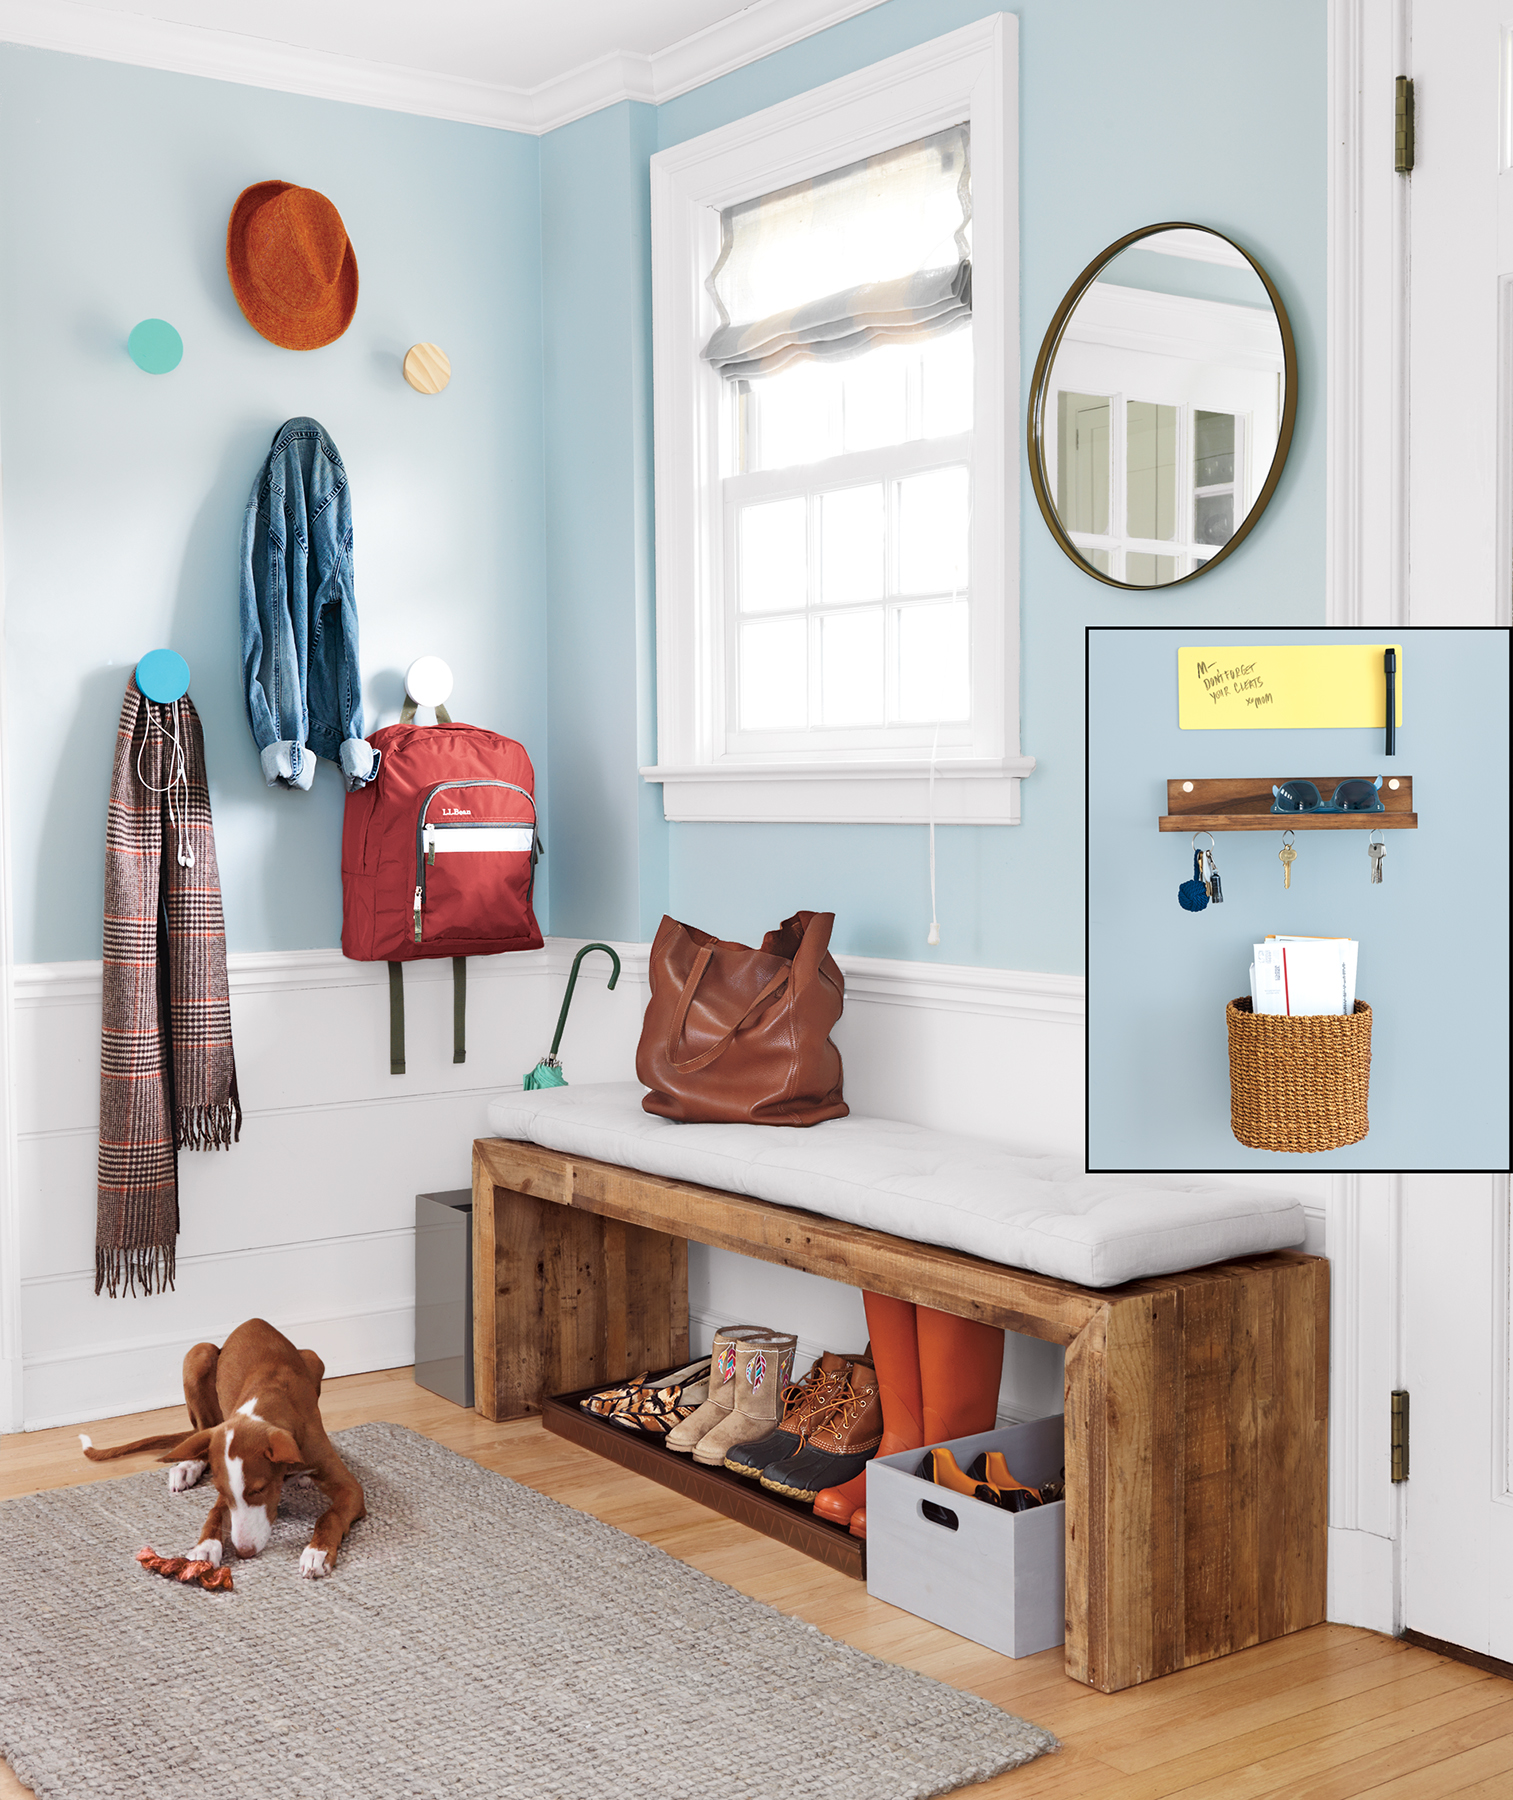 Entryway with mail inset